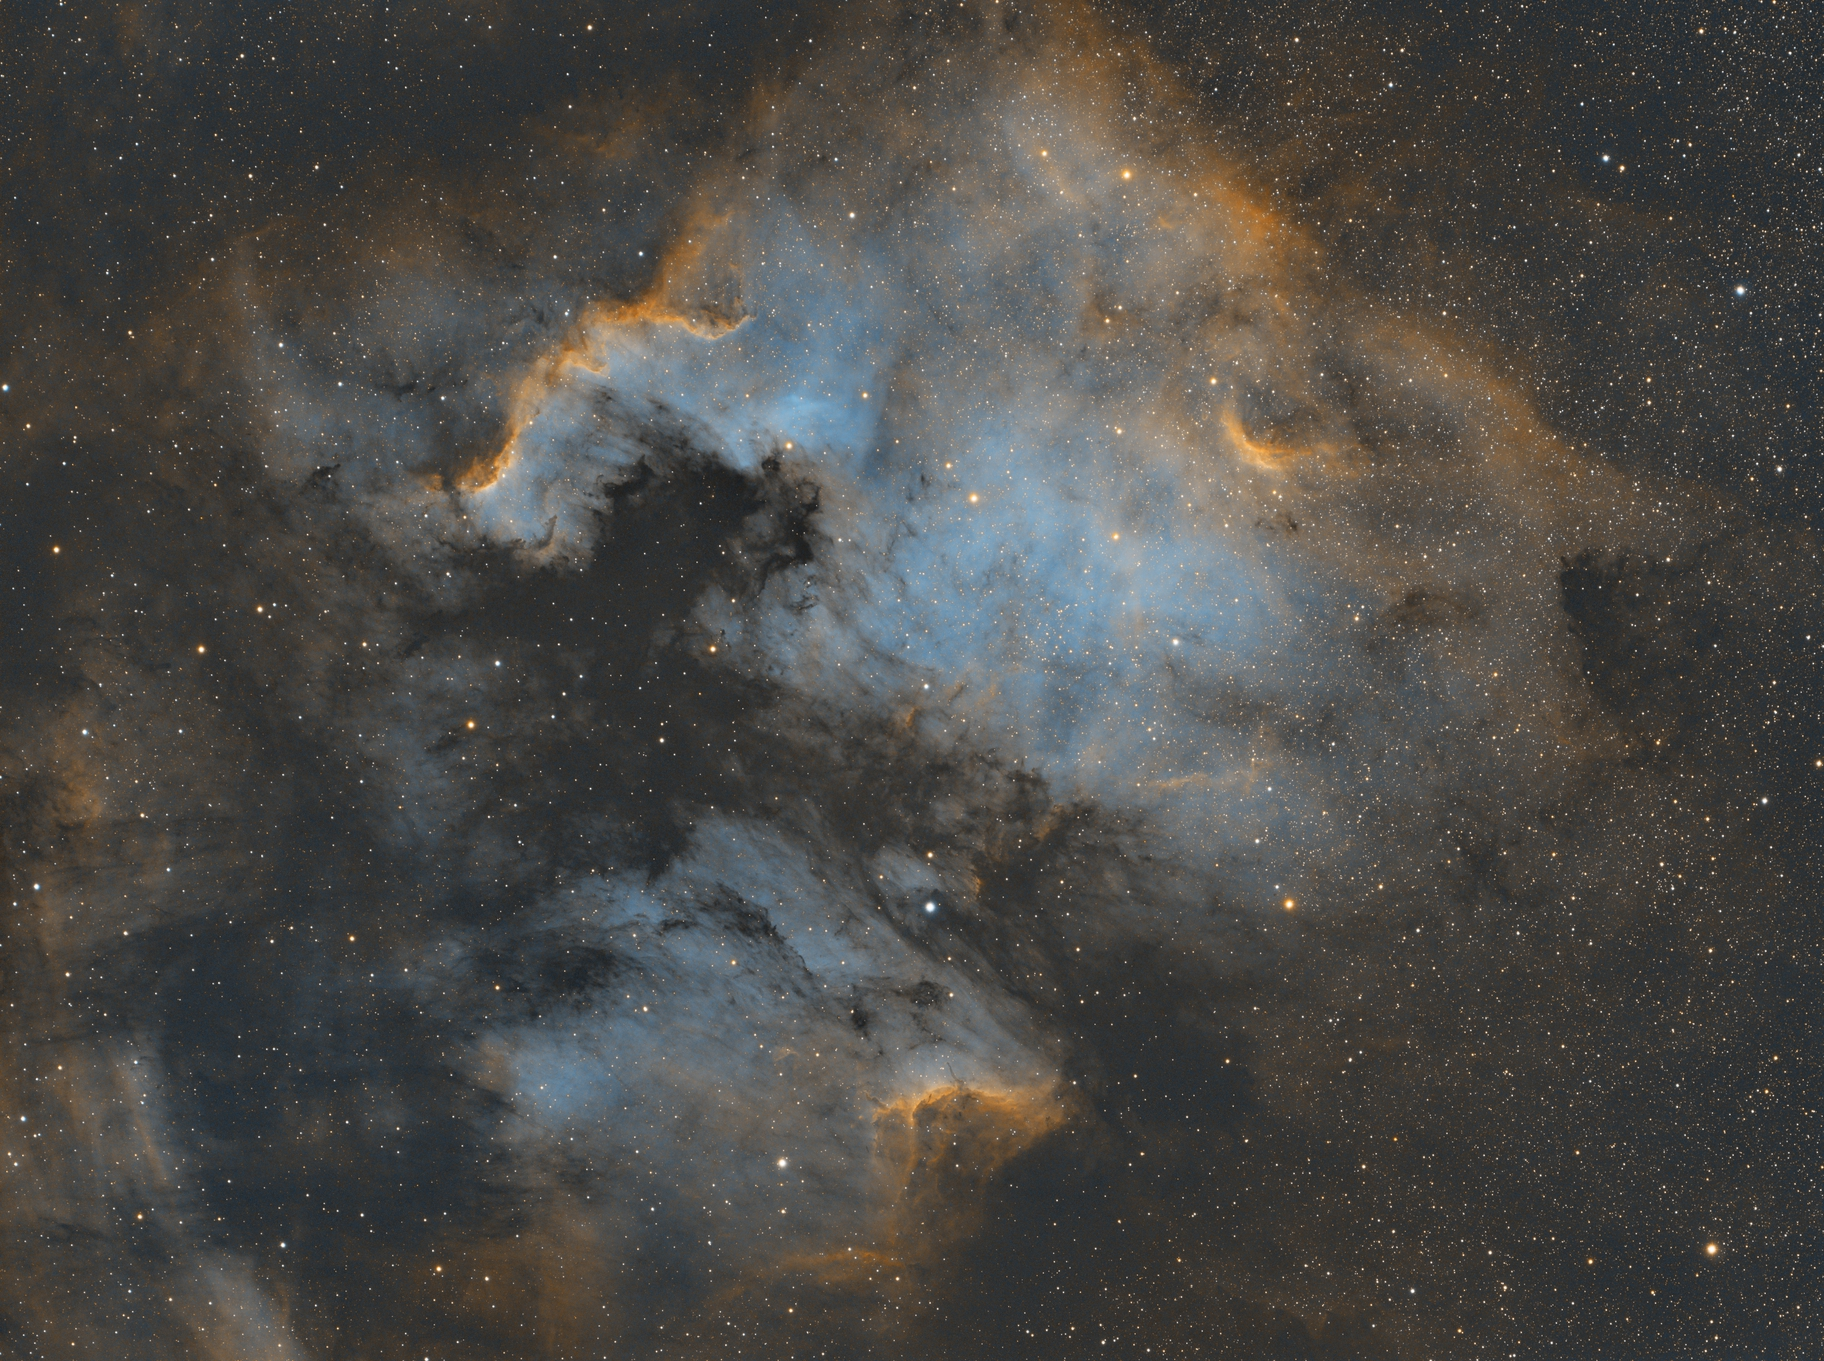 This is the North American Nebula (NGC 7000) along with the Pelican Nebula (IC1050). I captured this over 4-5 nights for a total of about 16 hours. It's All narrowband, Hydrogen Alpha, Oxygen III, and Nitrogen II.